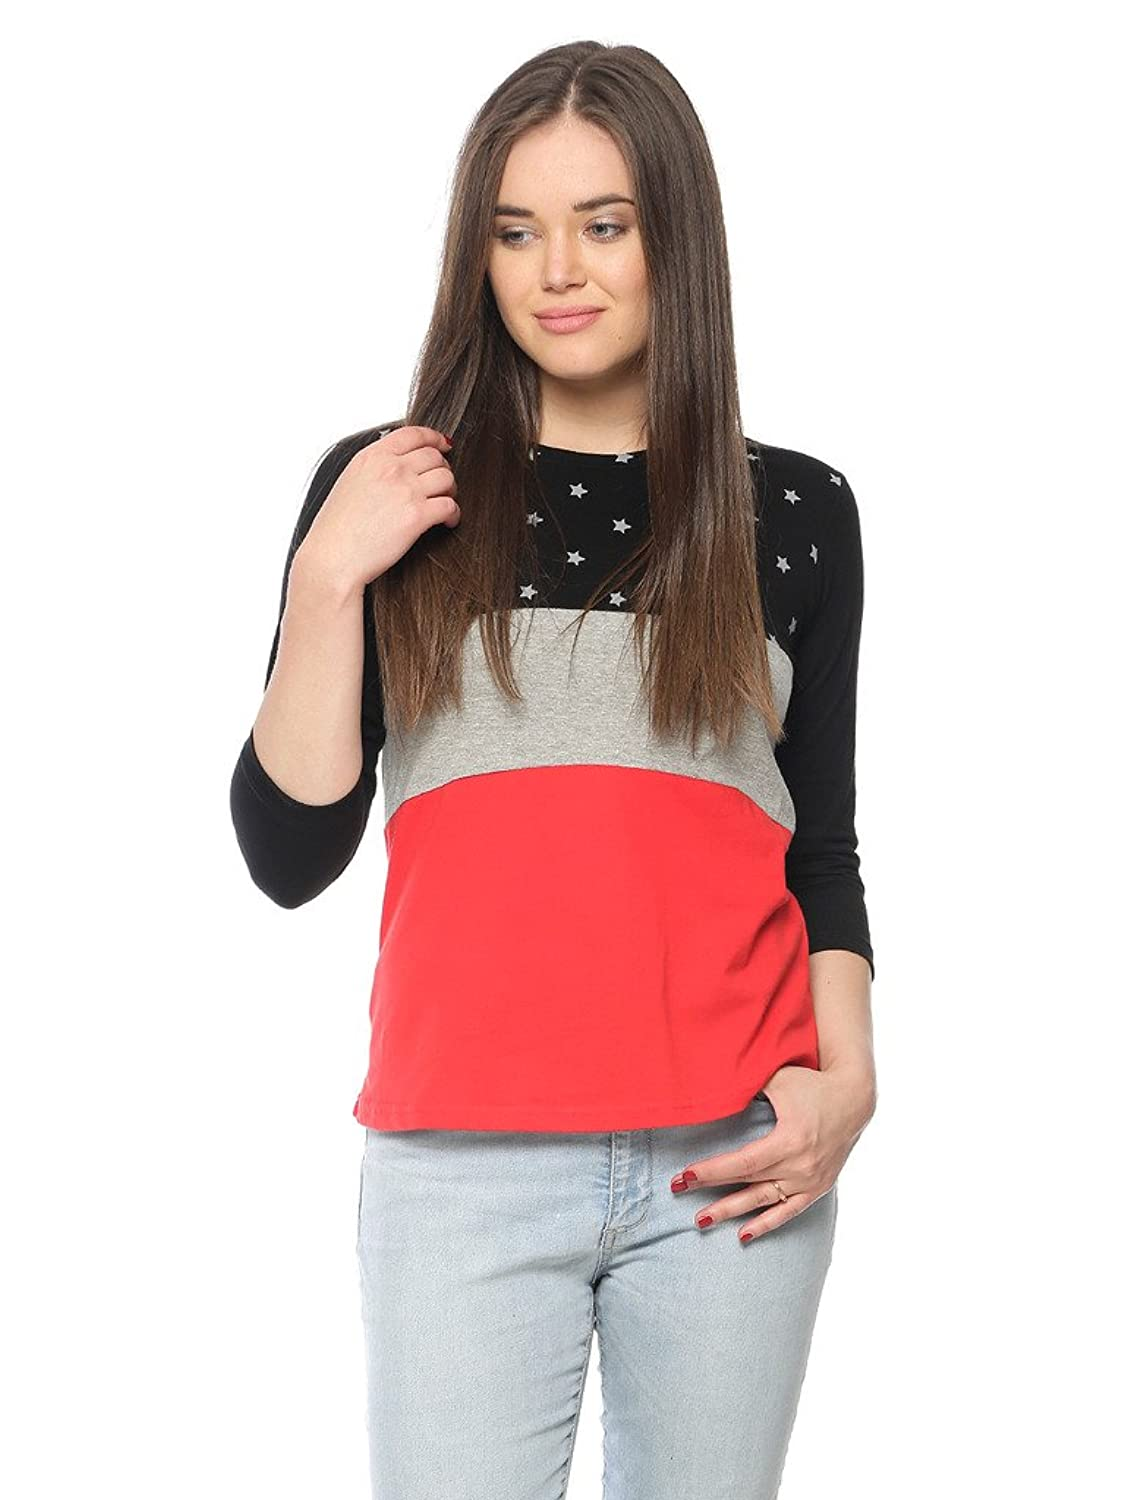 c56367c9f9ad36 Women's Top: Buy Jeans Top online at best prices in India - Amazon.in